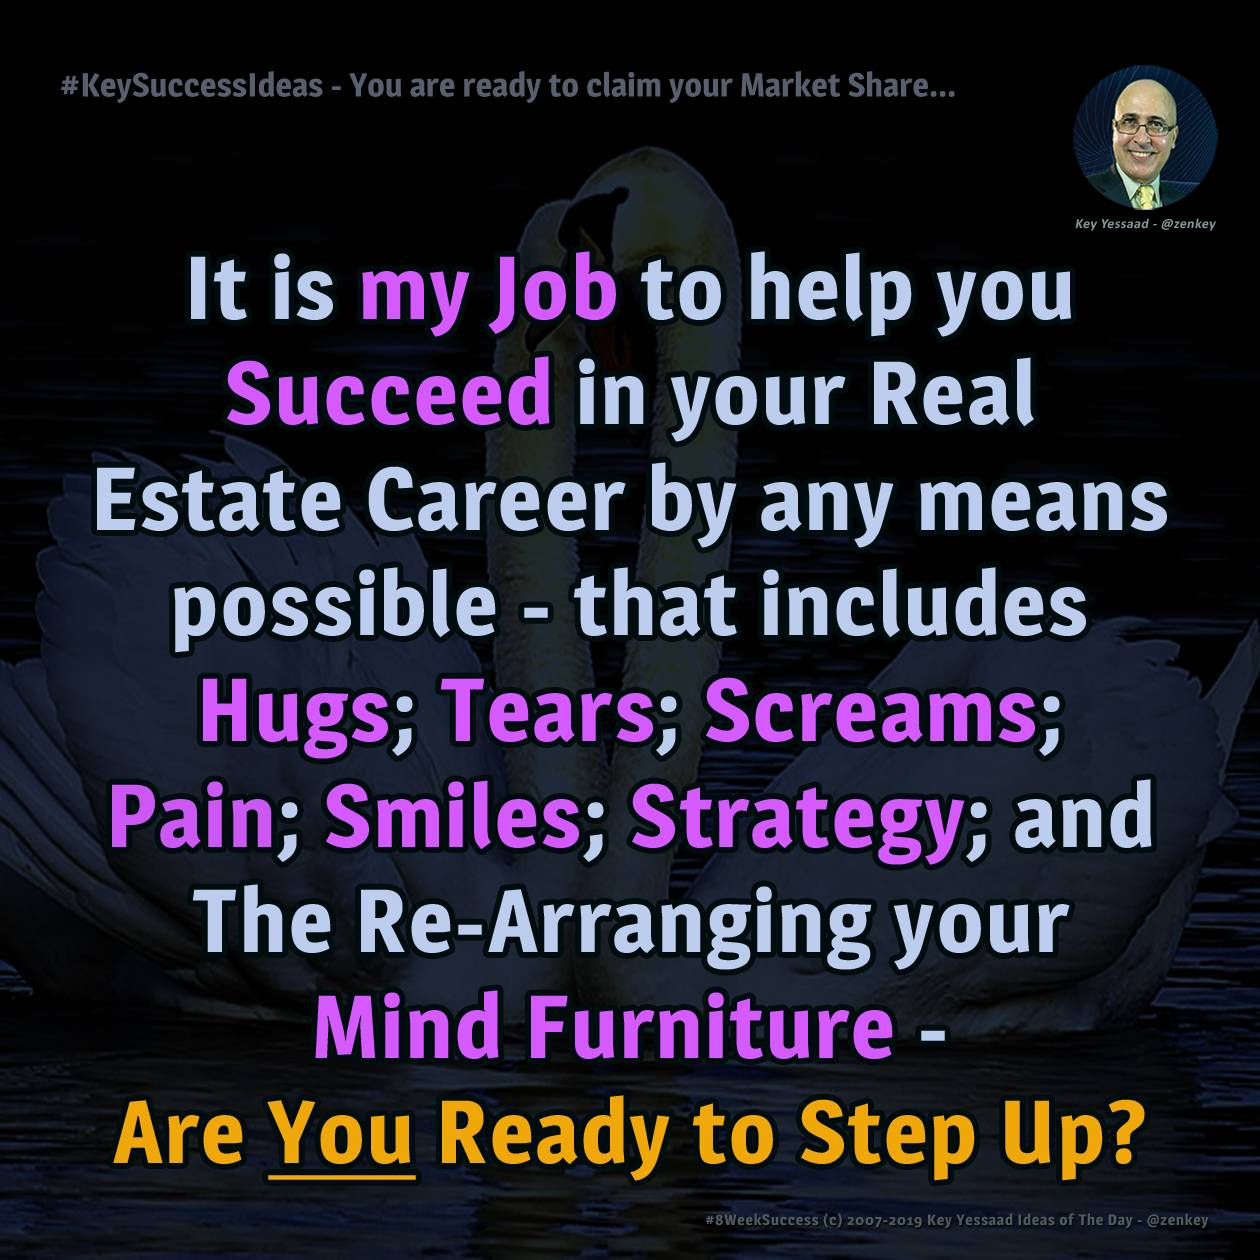 #KeySuccessIdeas - You are ready to claim your Market Share...